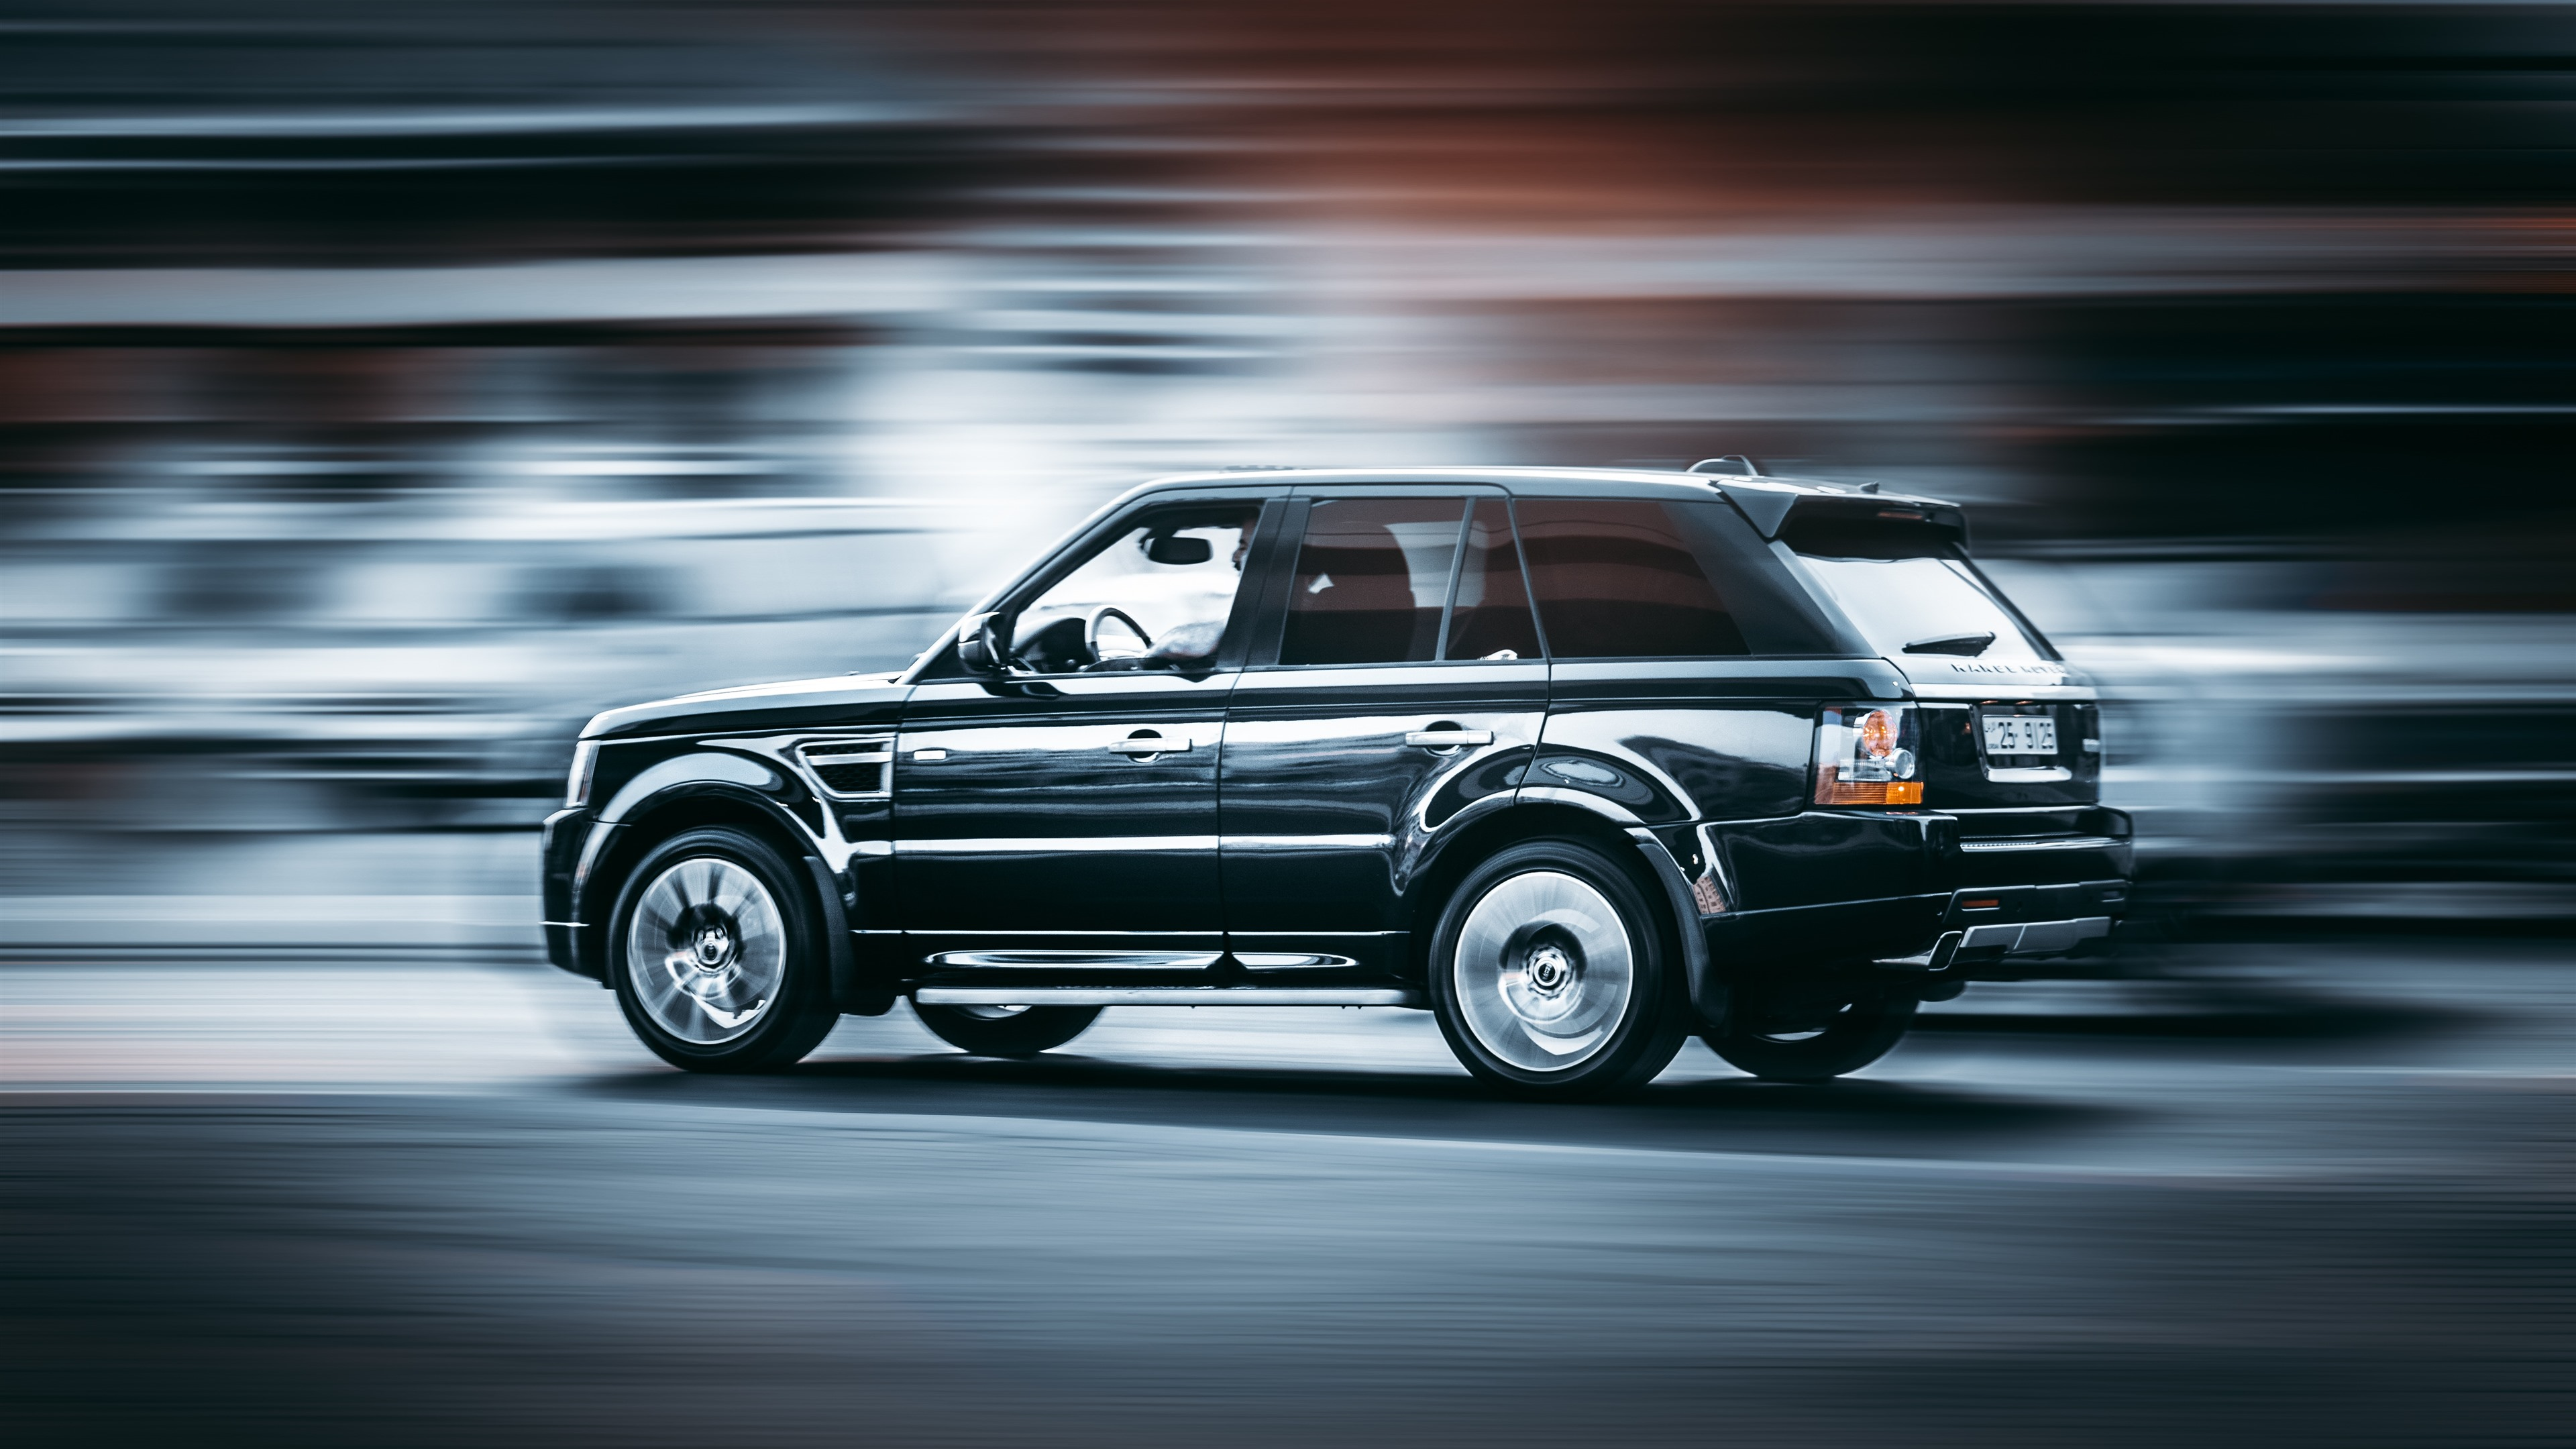 Wallpaper Range Rover Black Suv Car Side View Speed 5120x2880 Uhd 5k Picture Image